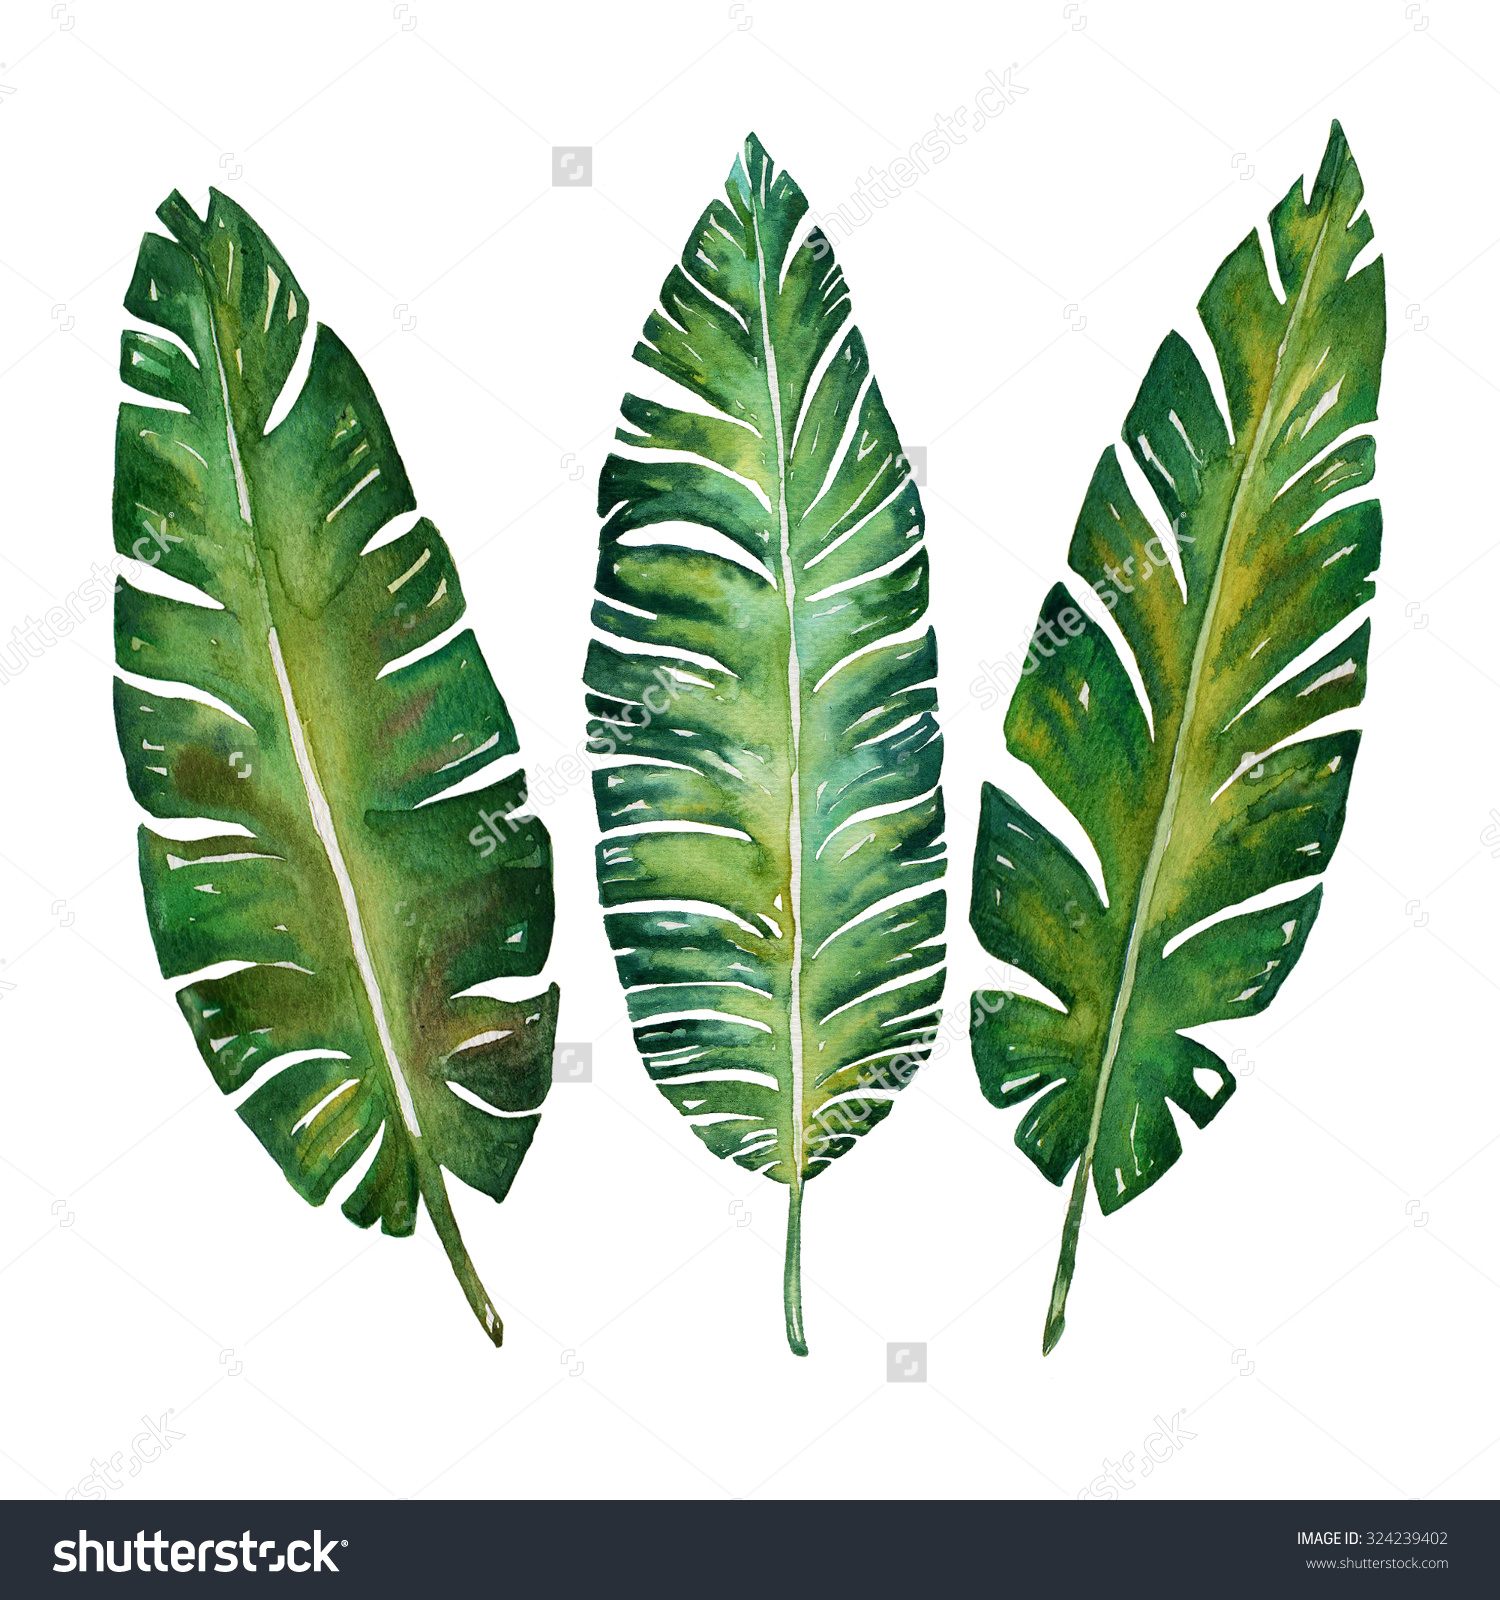 1500x1600 Banana Leaves Watercolor Plant Botanic Painting On White